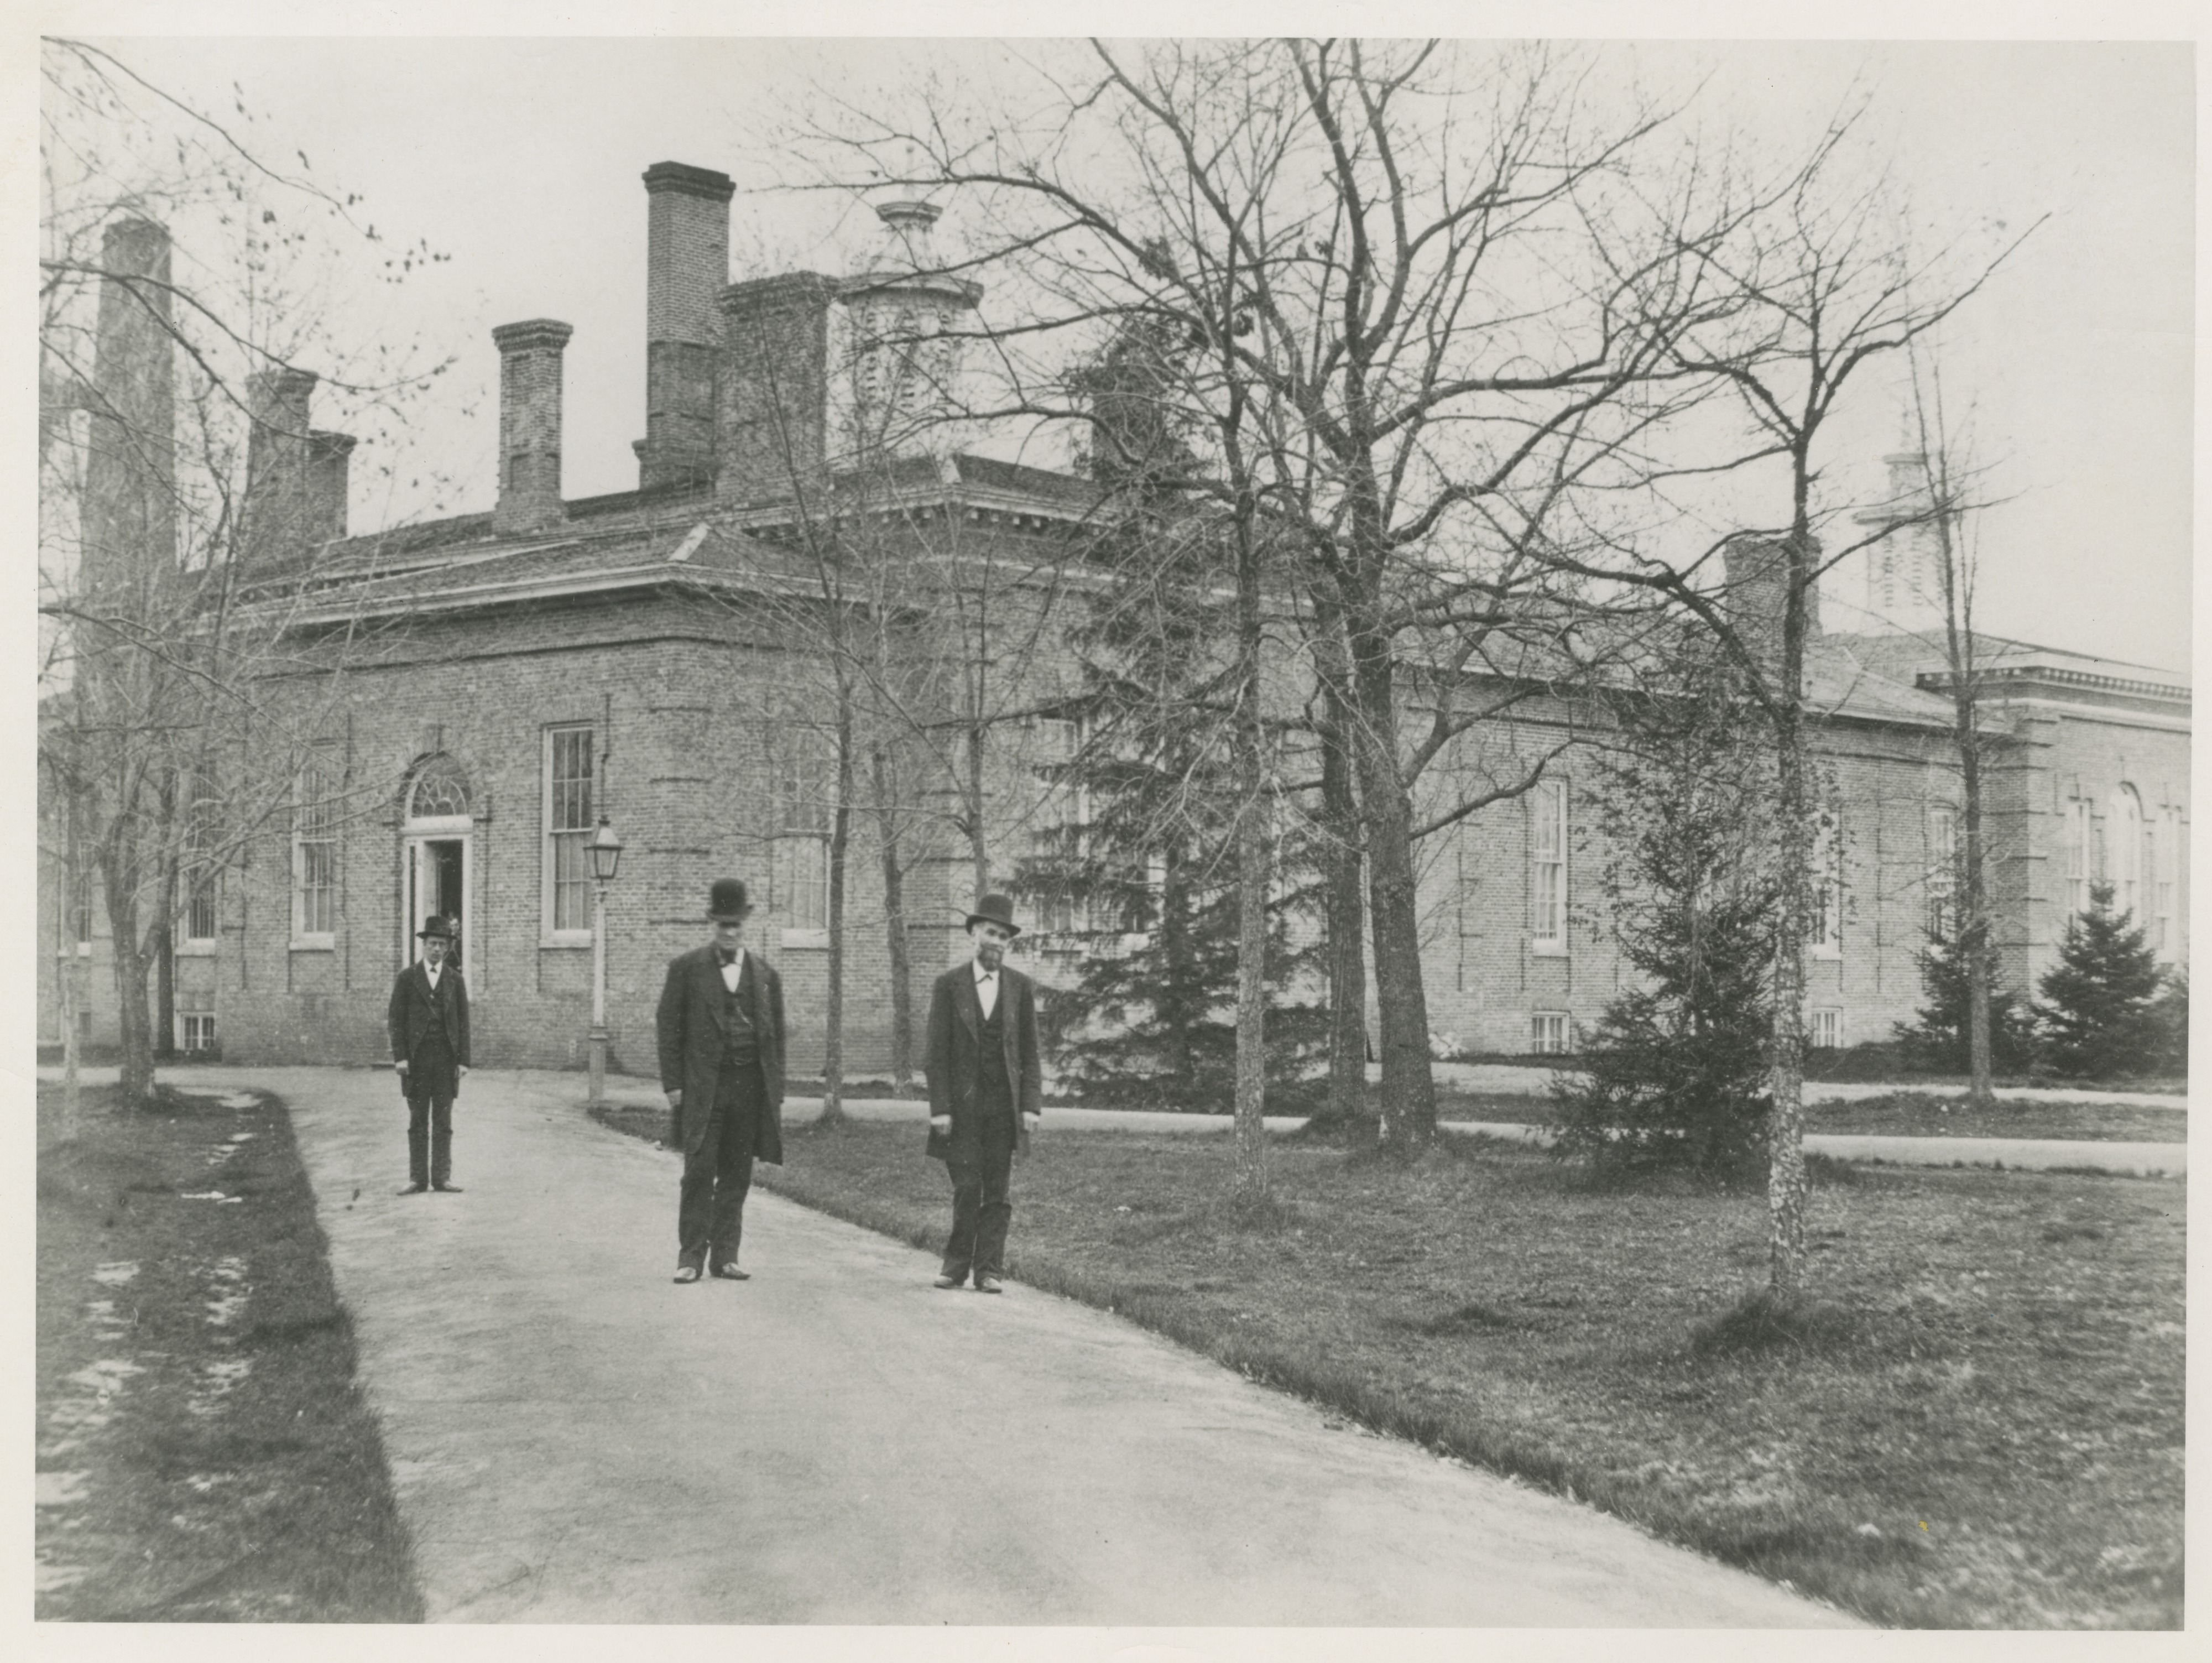 University of Michigan Chemical Laboratory Building, Undated image